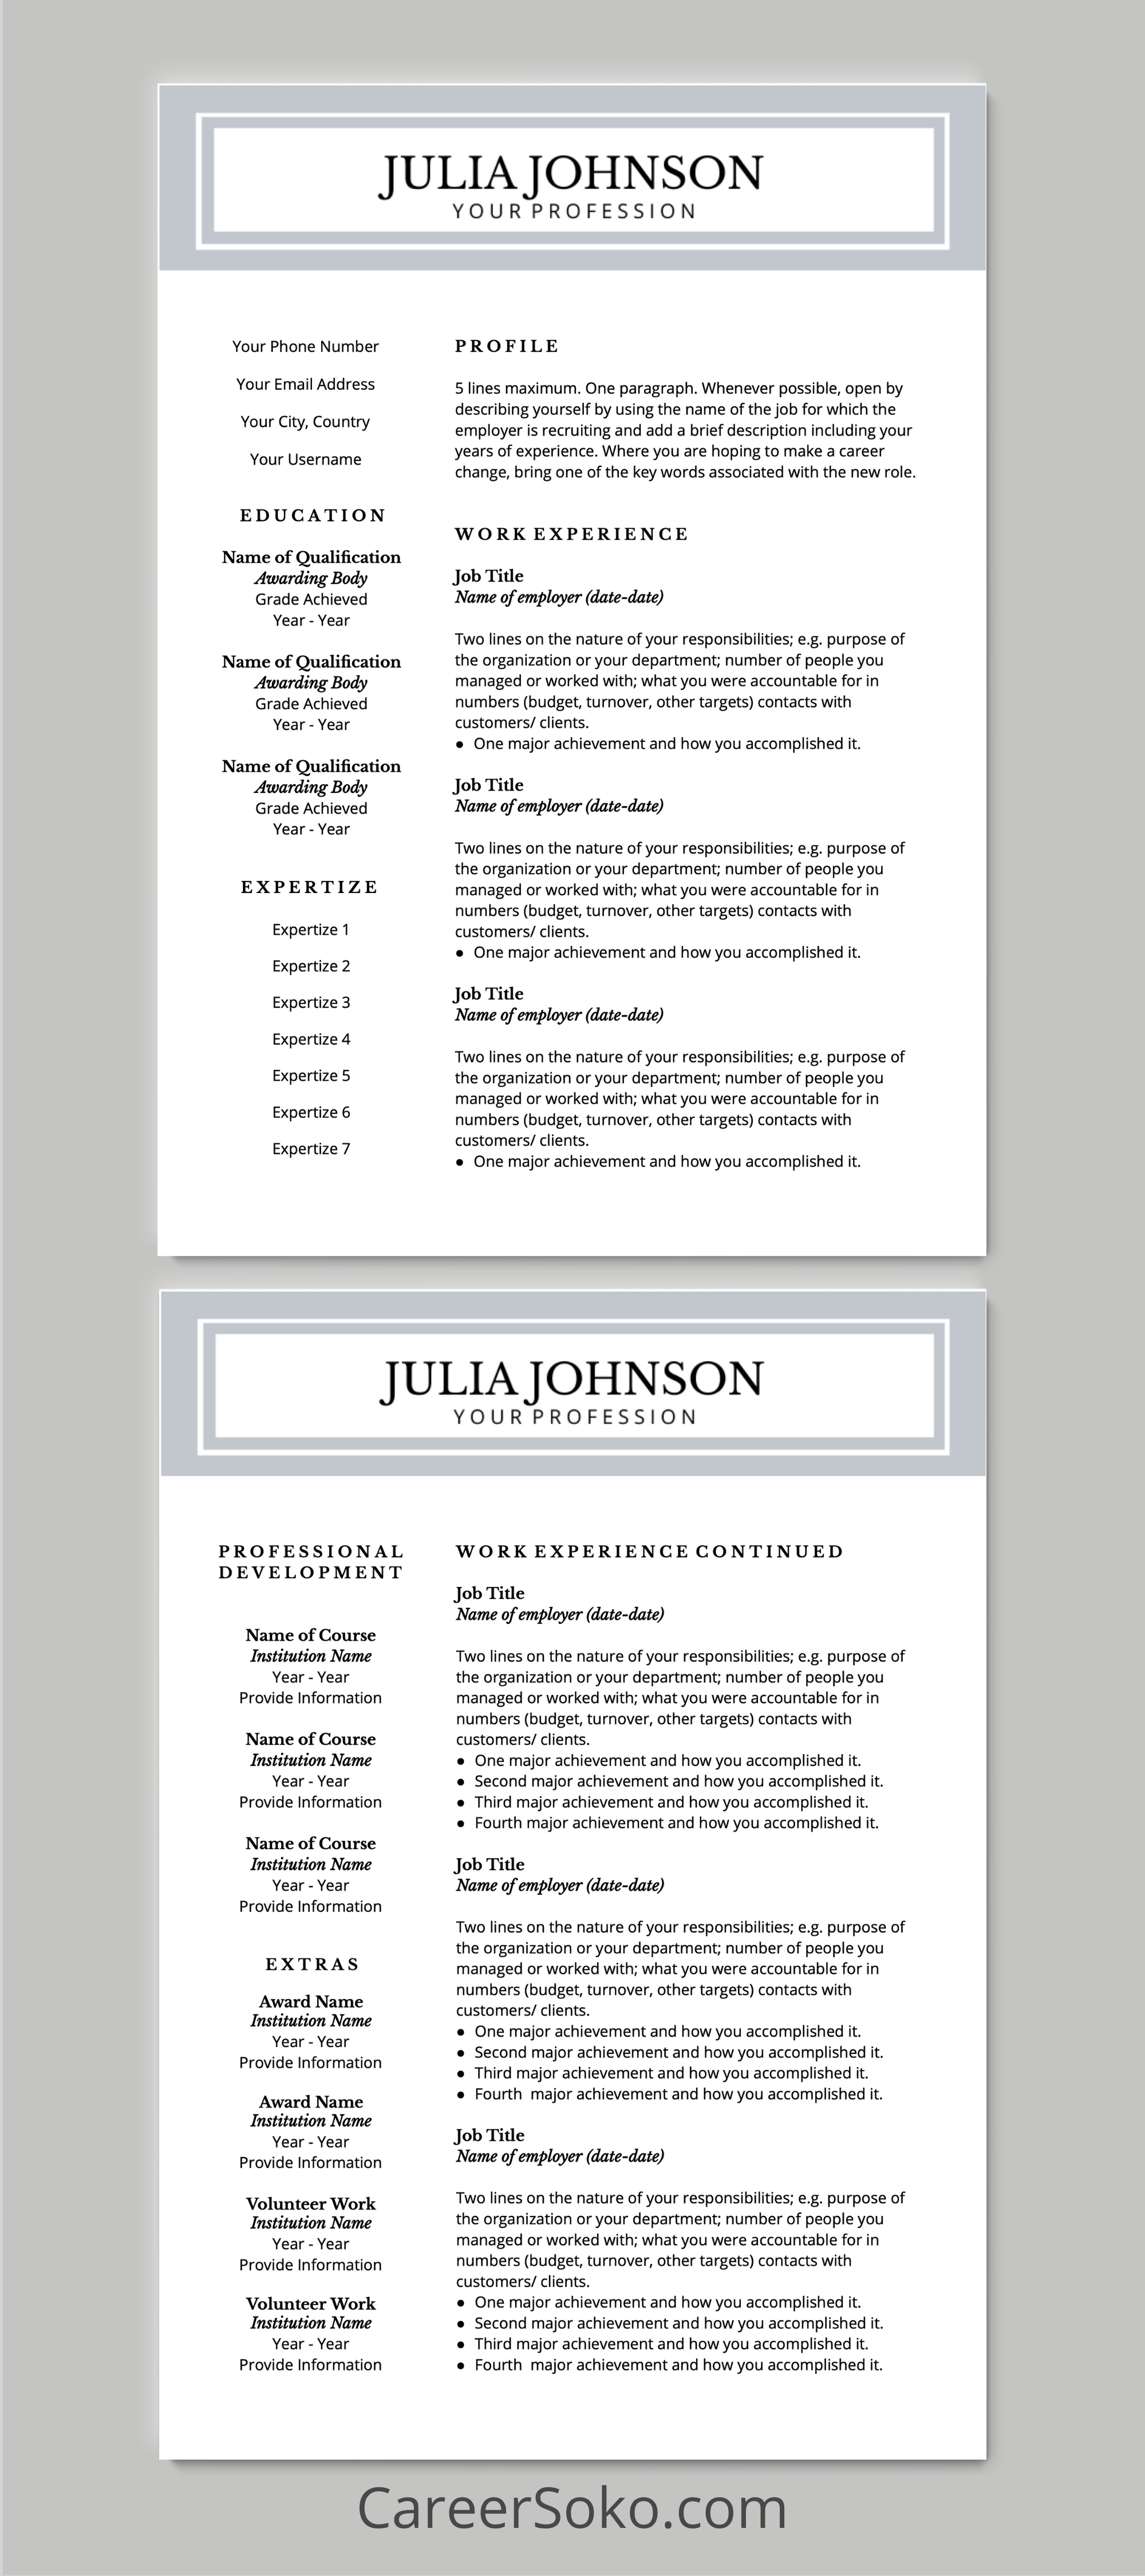 Resume Template for Google Docs I Cover Letter Included I